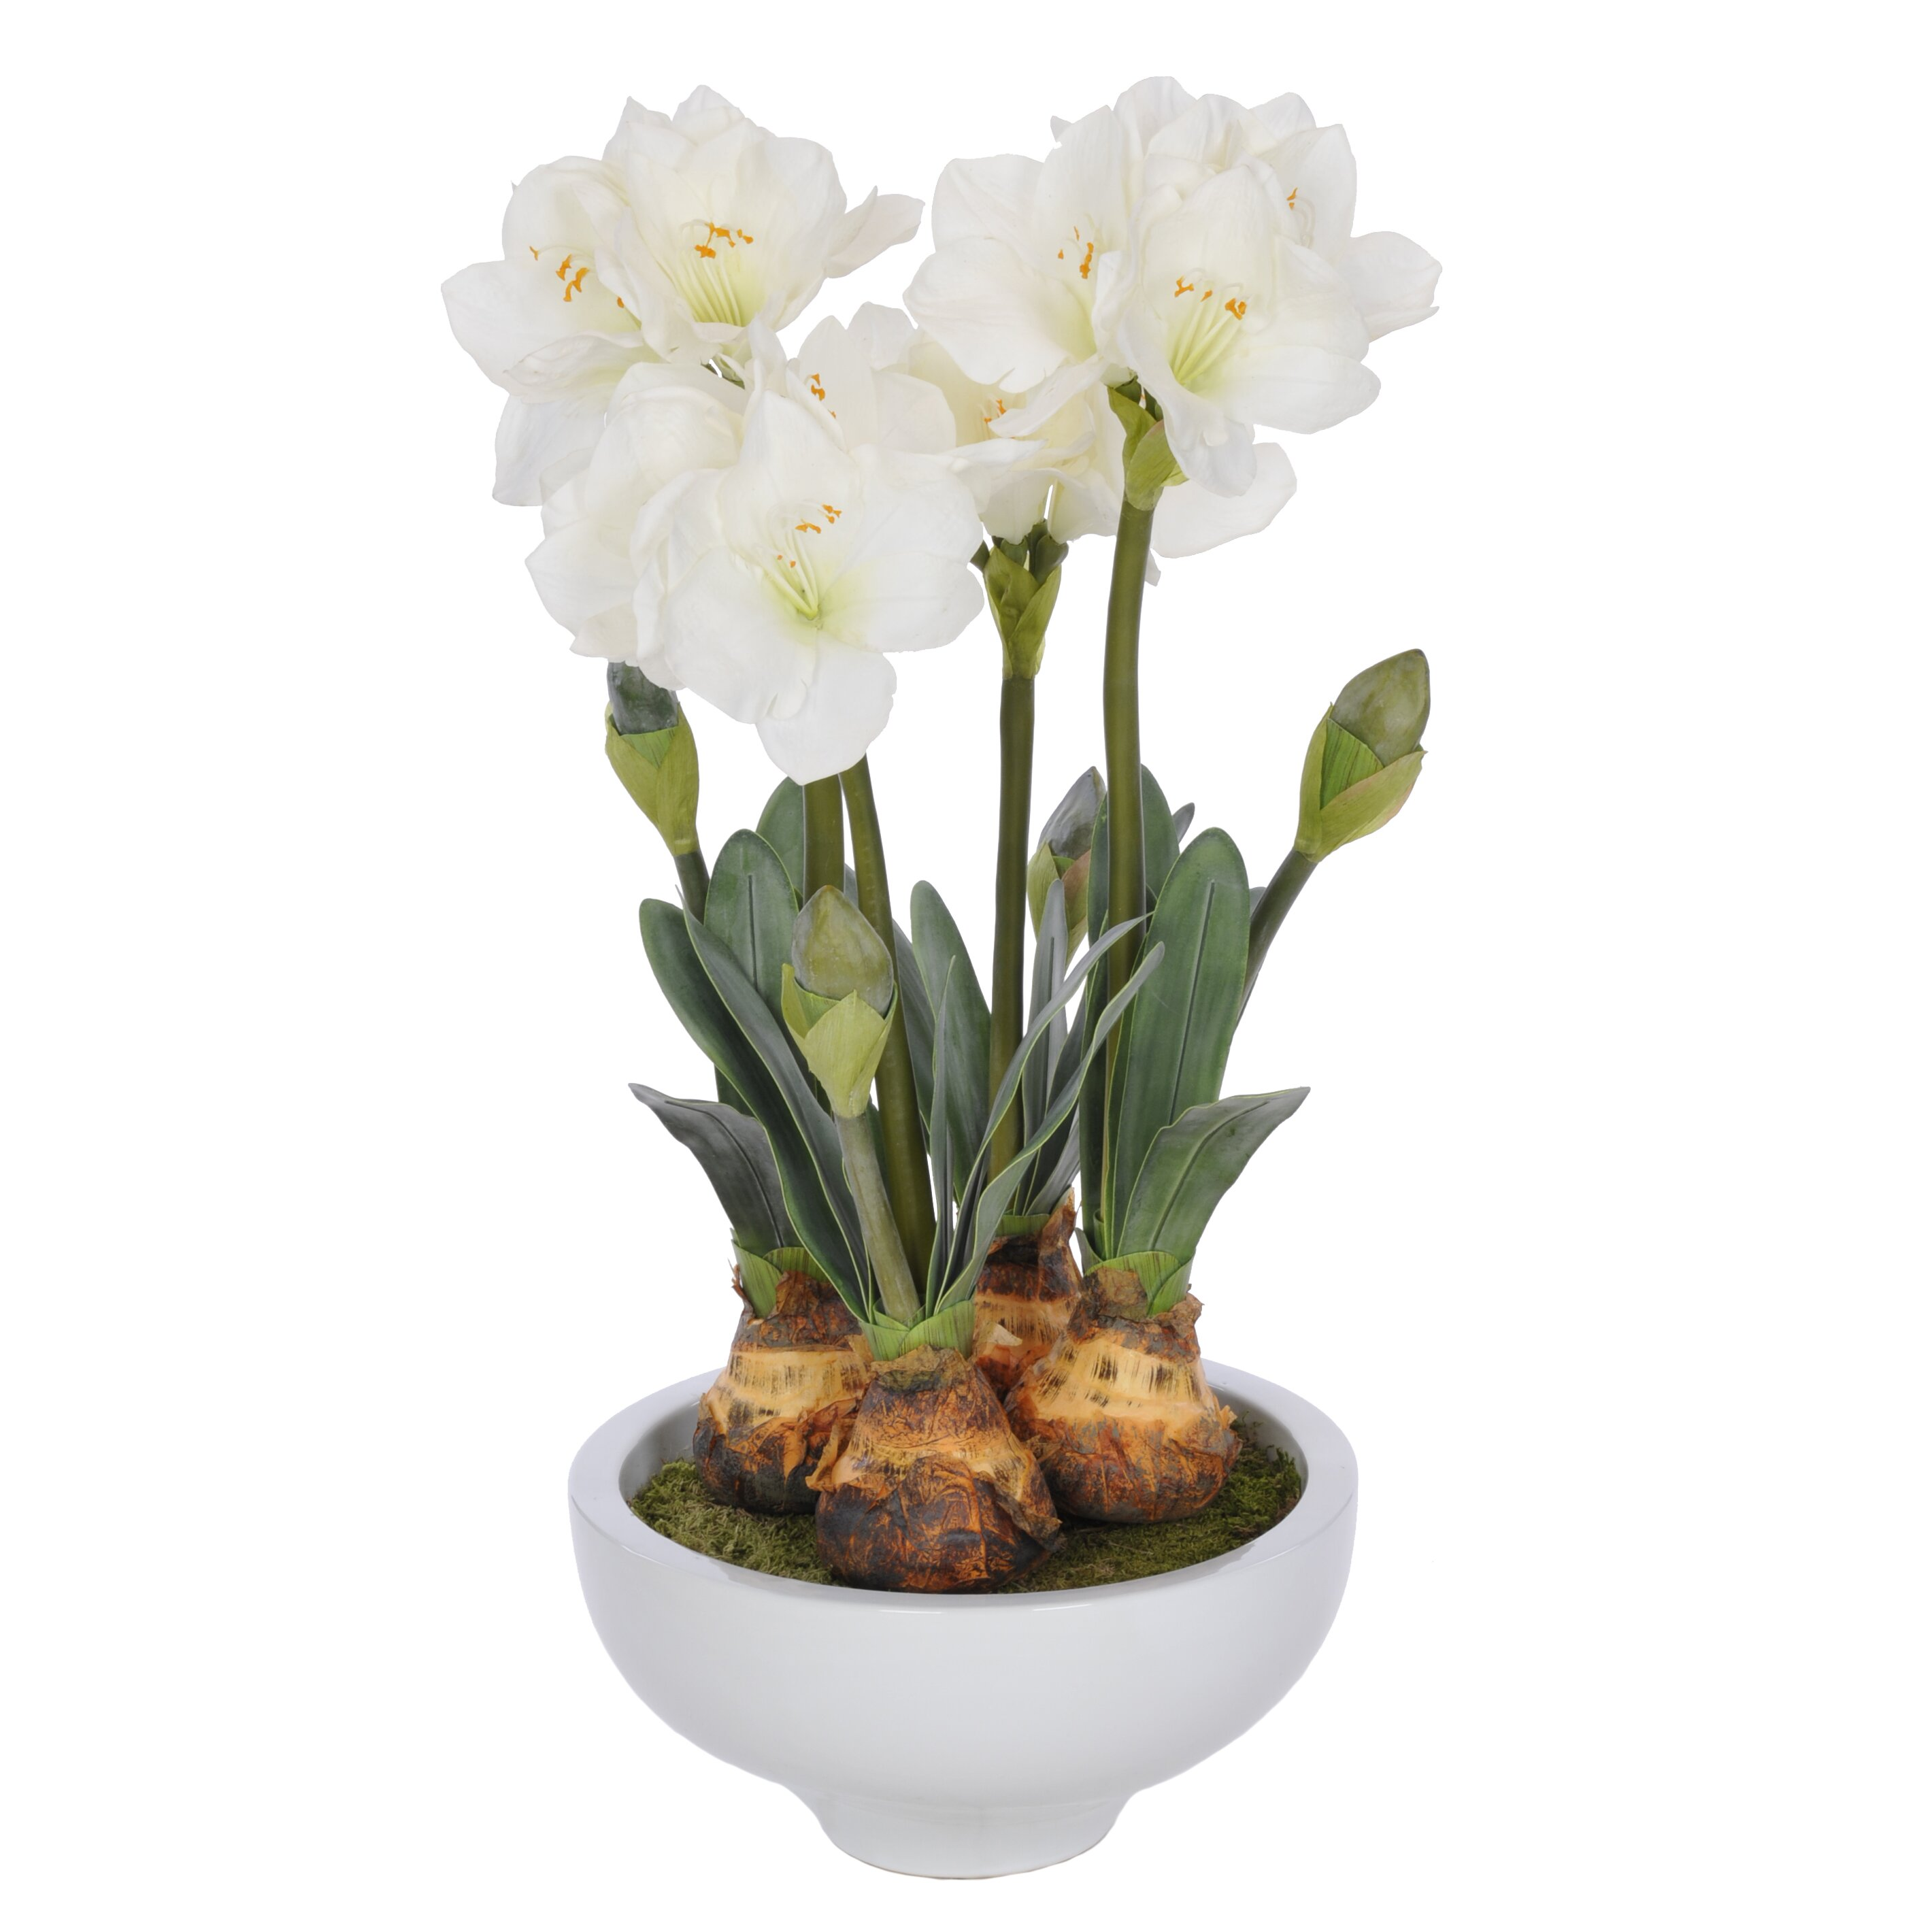 Flower Pots With Artificial Flowers Artificial Amaryllis In Pot Hf Ww